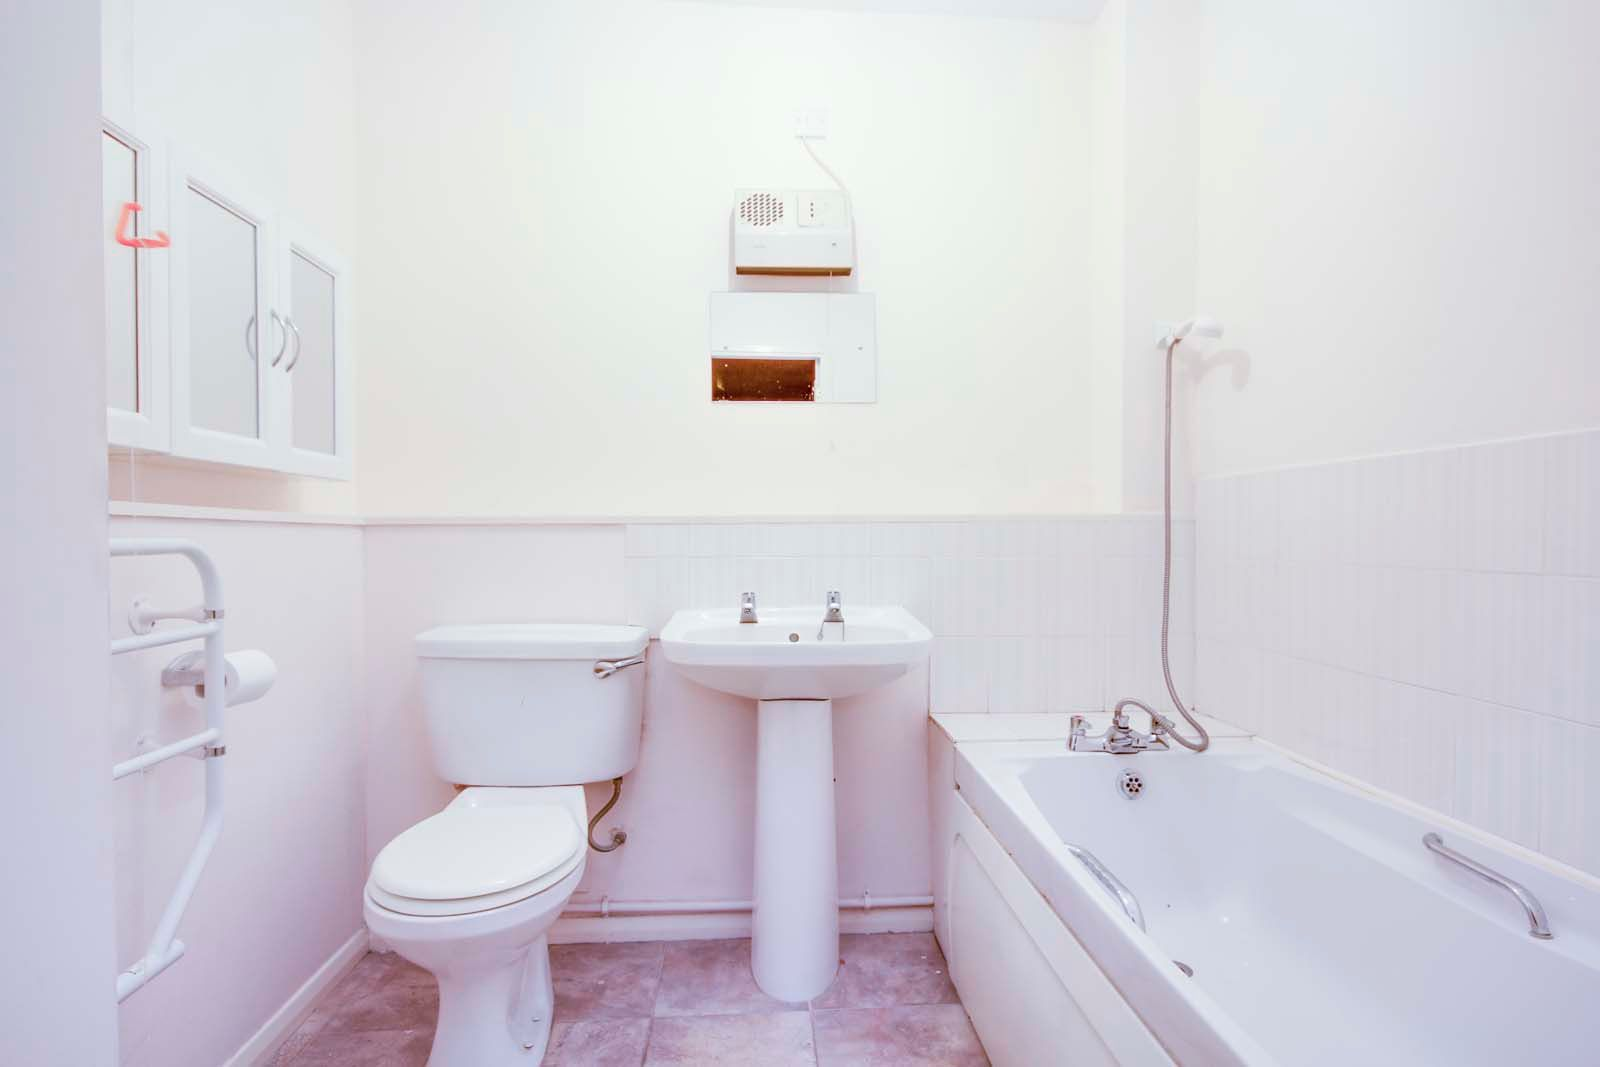 2 bed Apartment for sale in East Preston - Bathroom (Property Image 5)